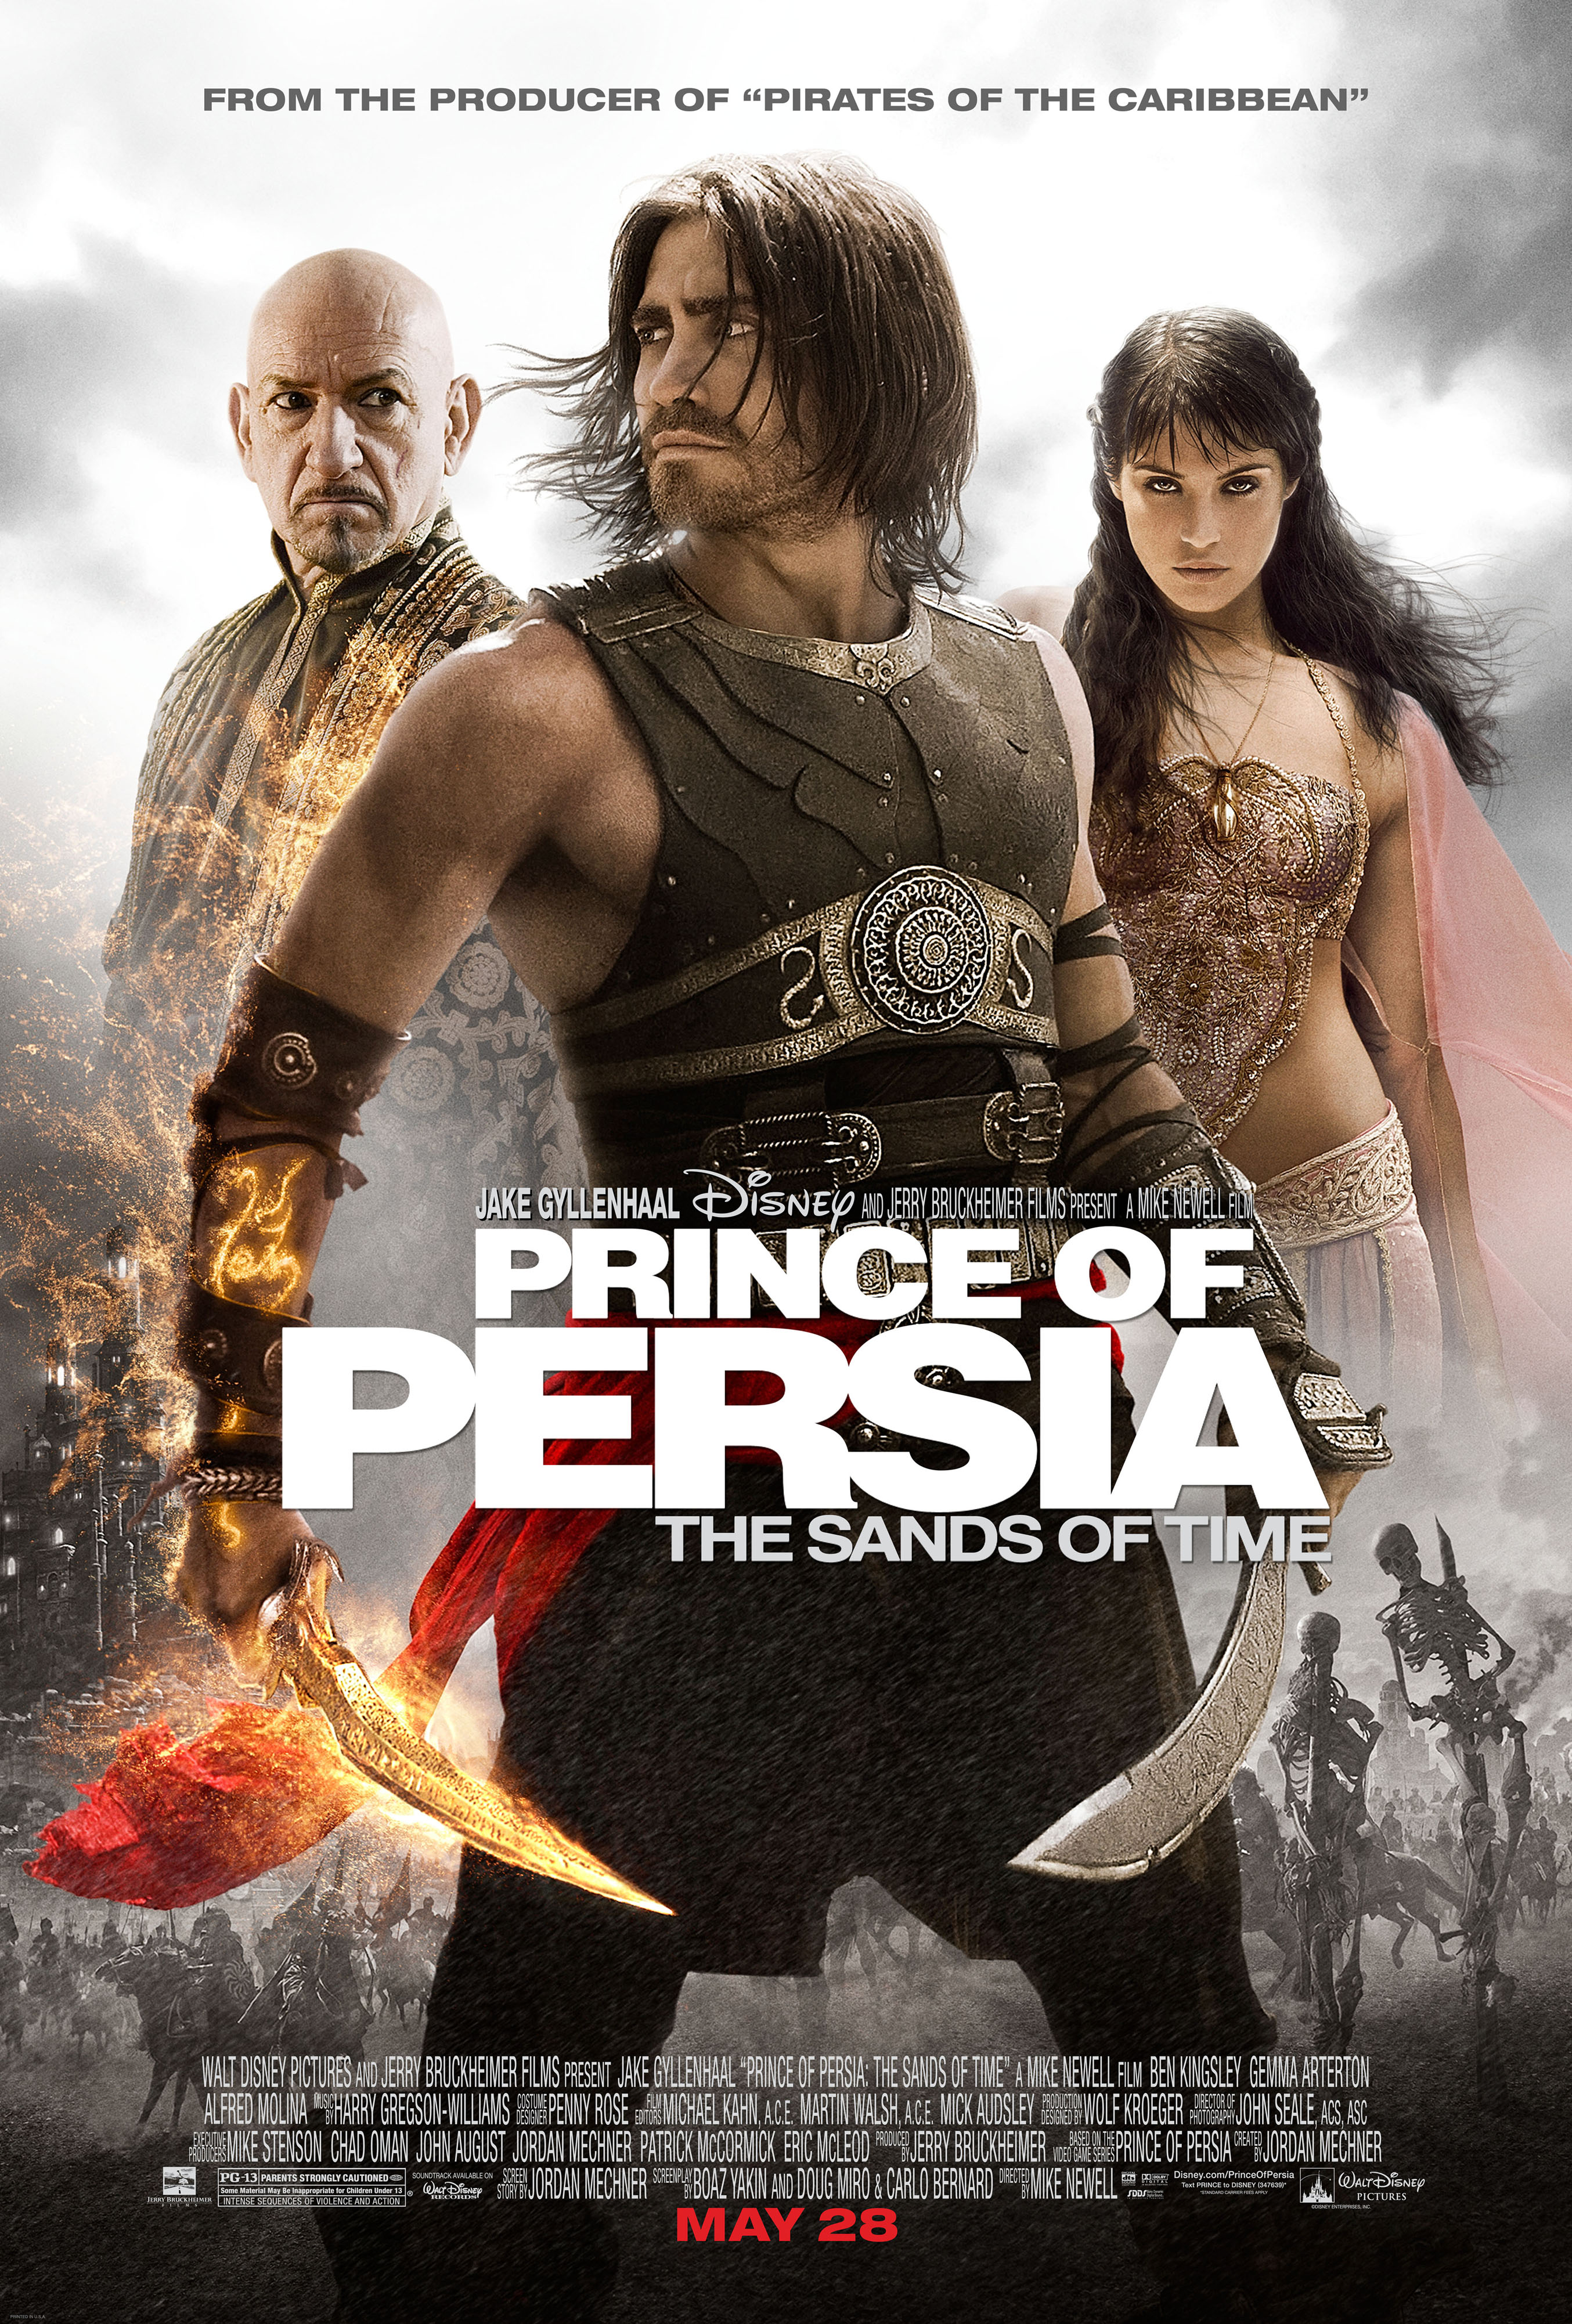 Prince Of Persia Movie Wallpapers - Wallpaper Cave |Prince Of Persia Movie Wallpapers